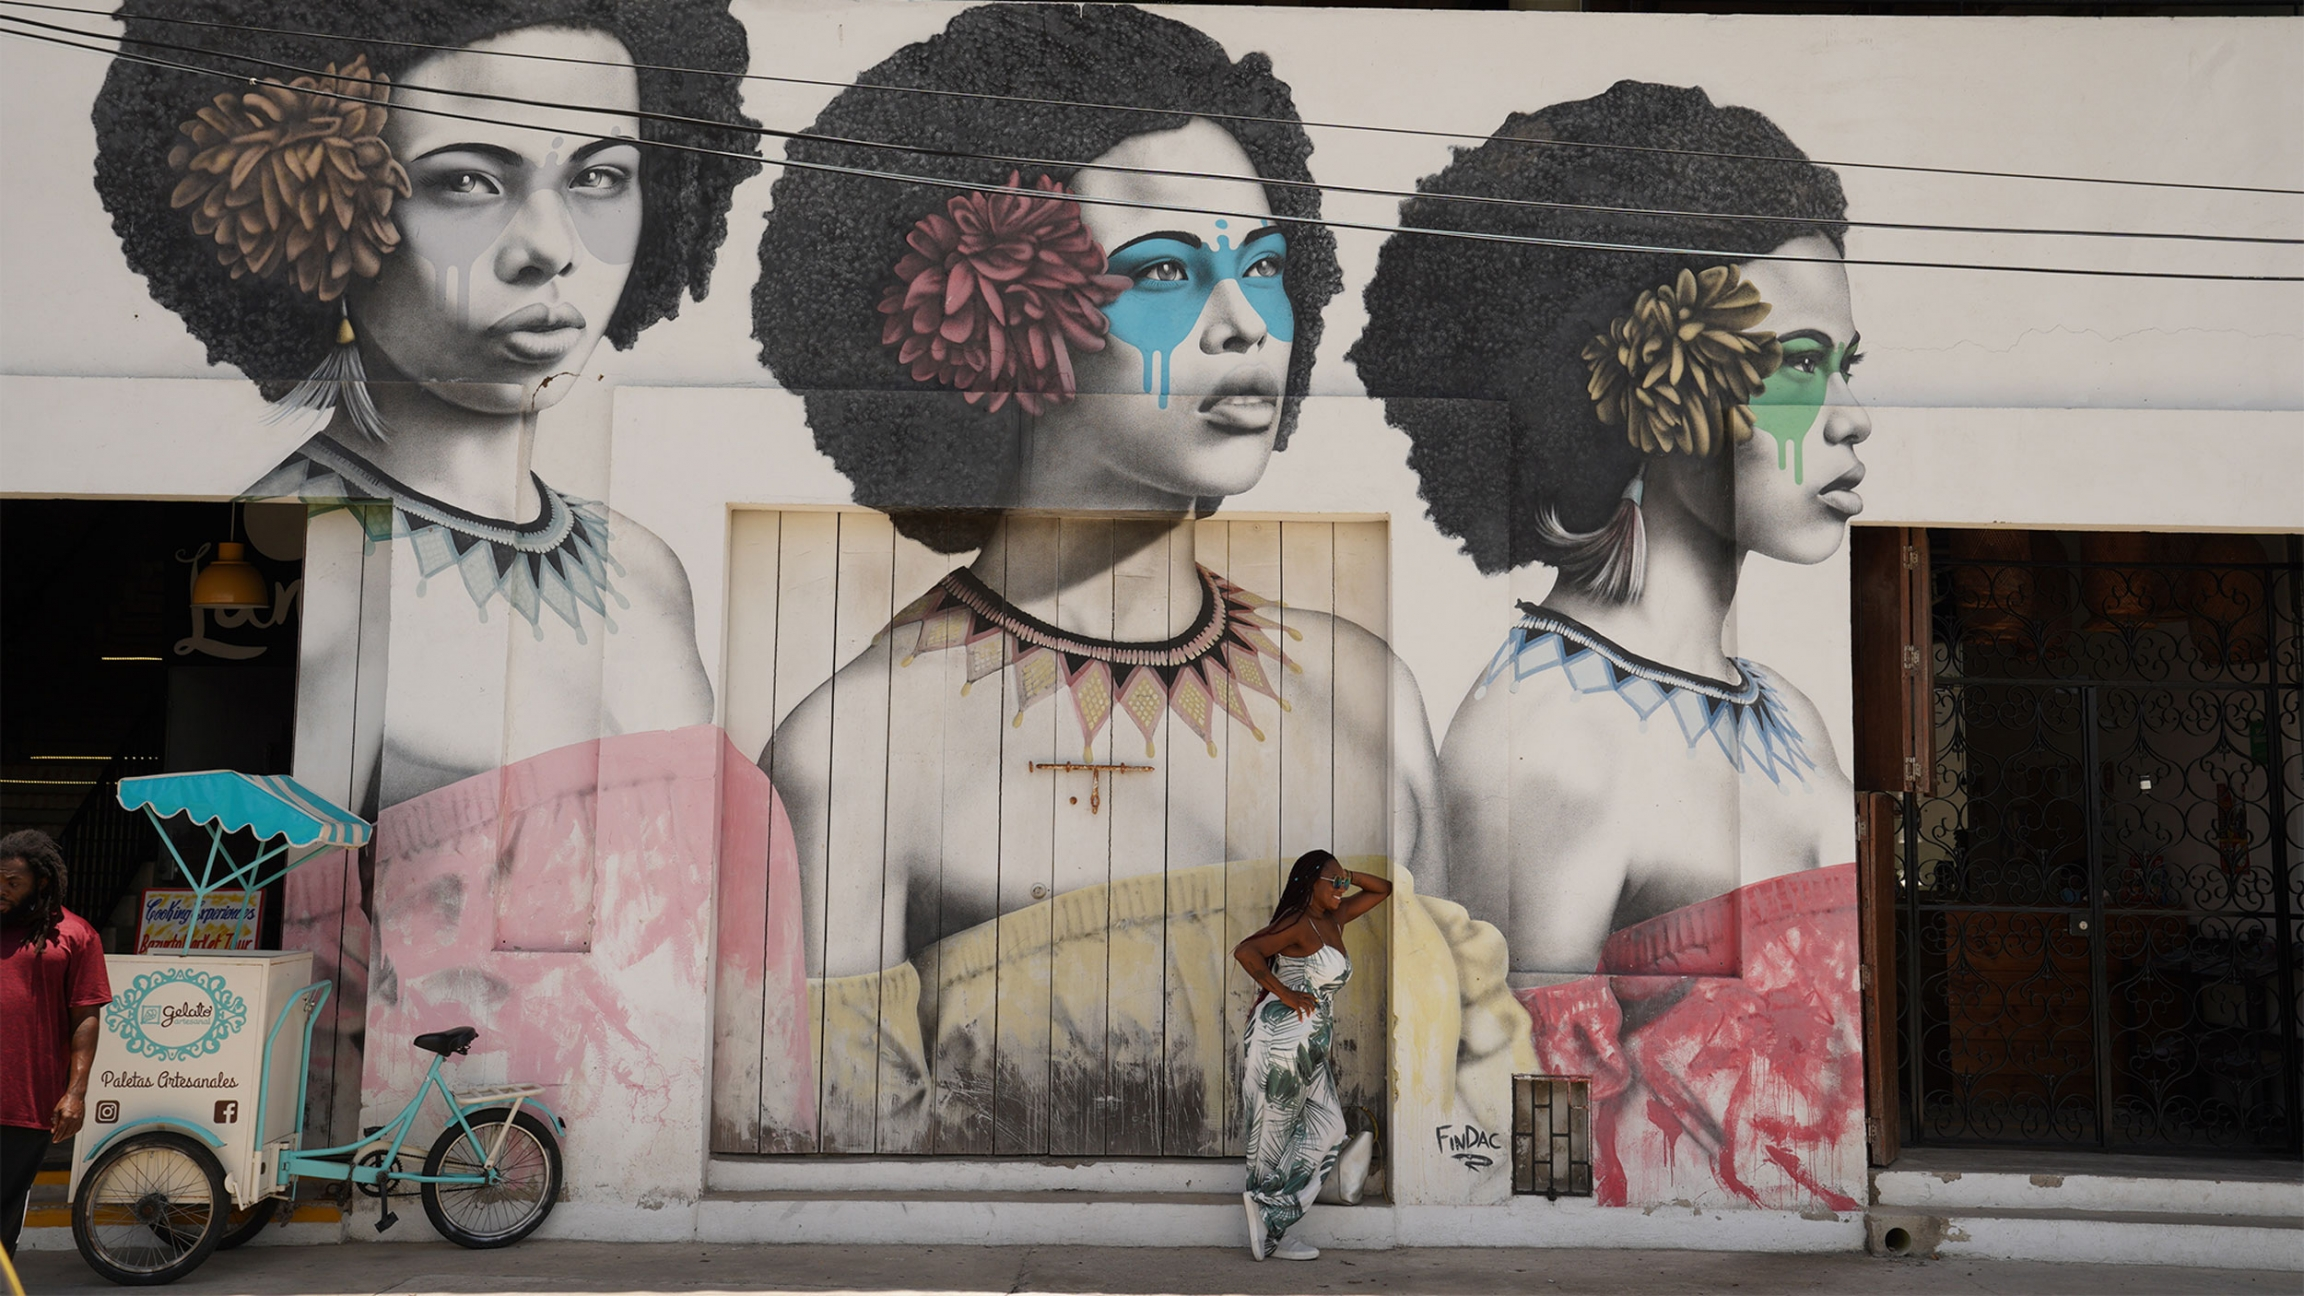 A mural in Cartagena's Getsemani Neighborhood celebrates the city's Afro-Colombian heritage and the natural hairstyles of Black women